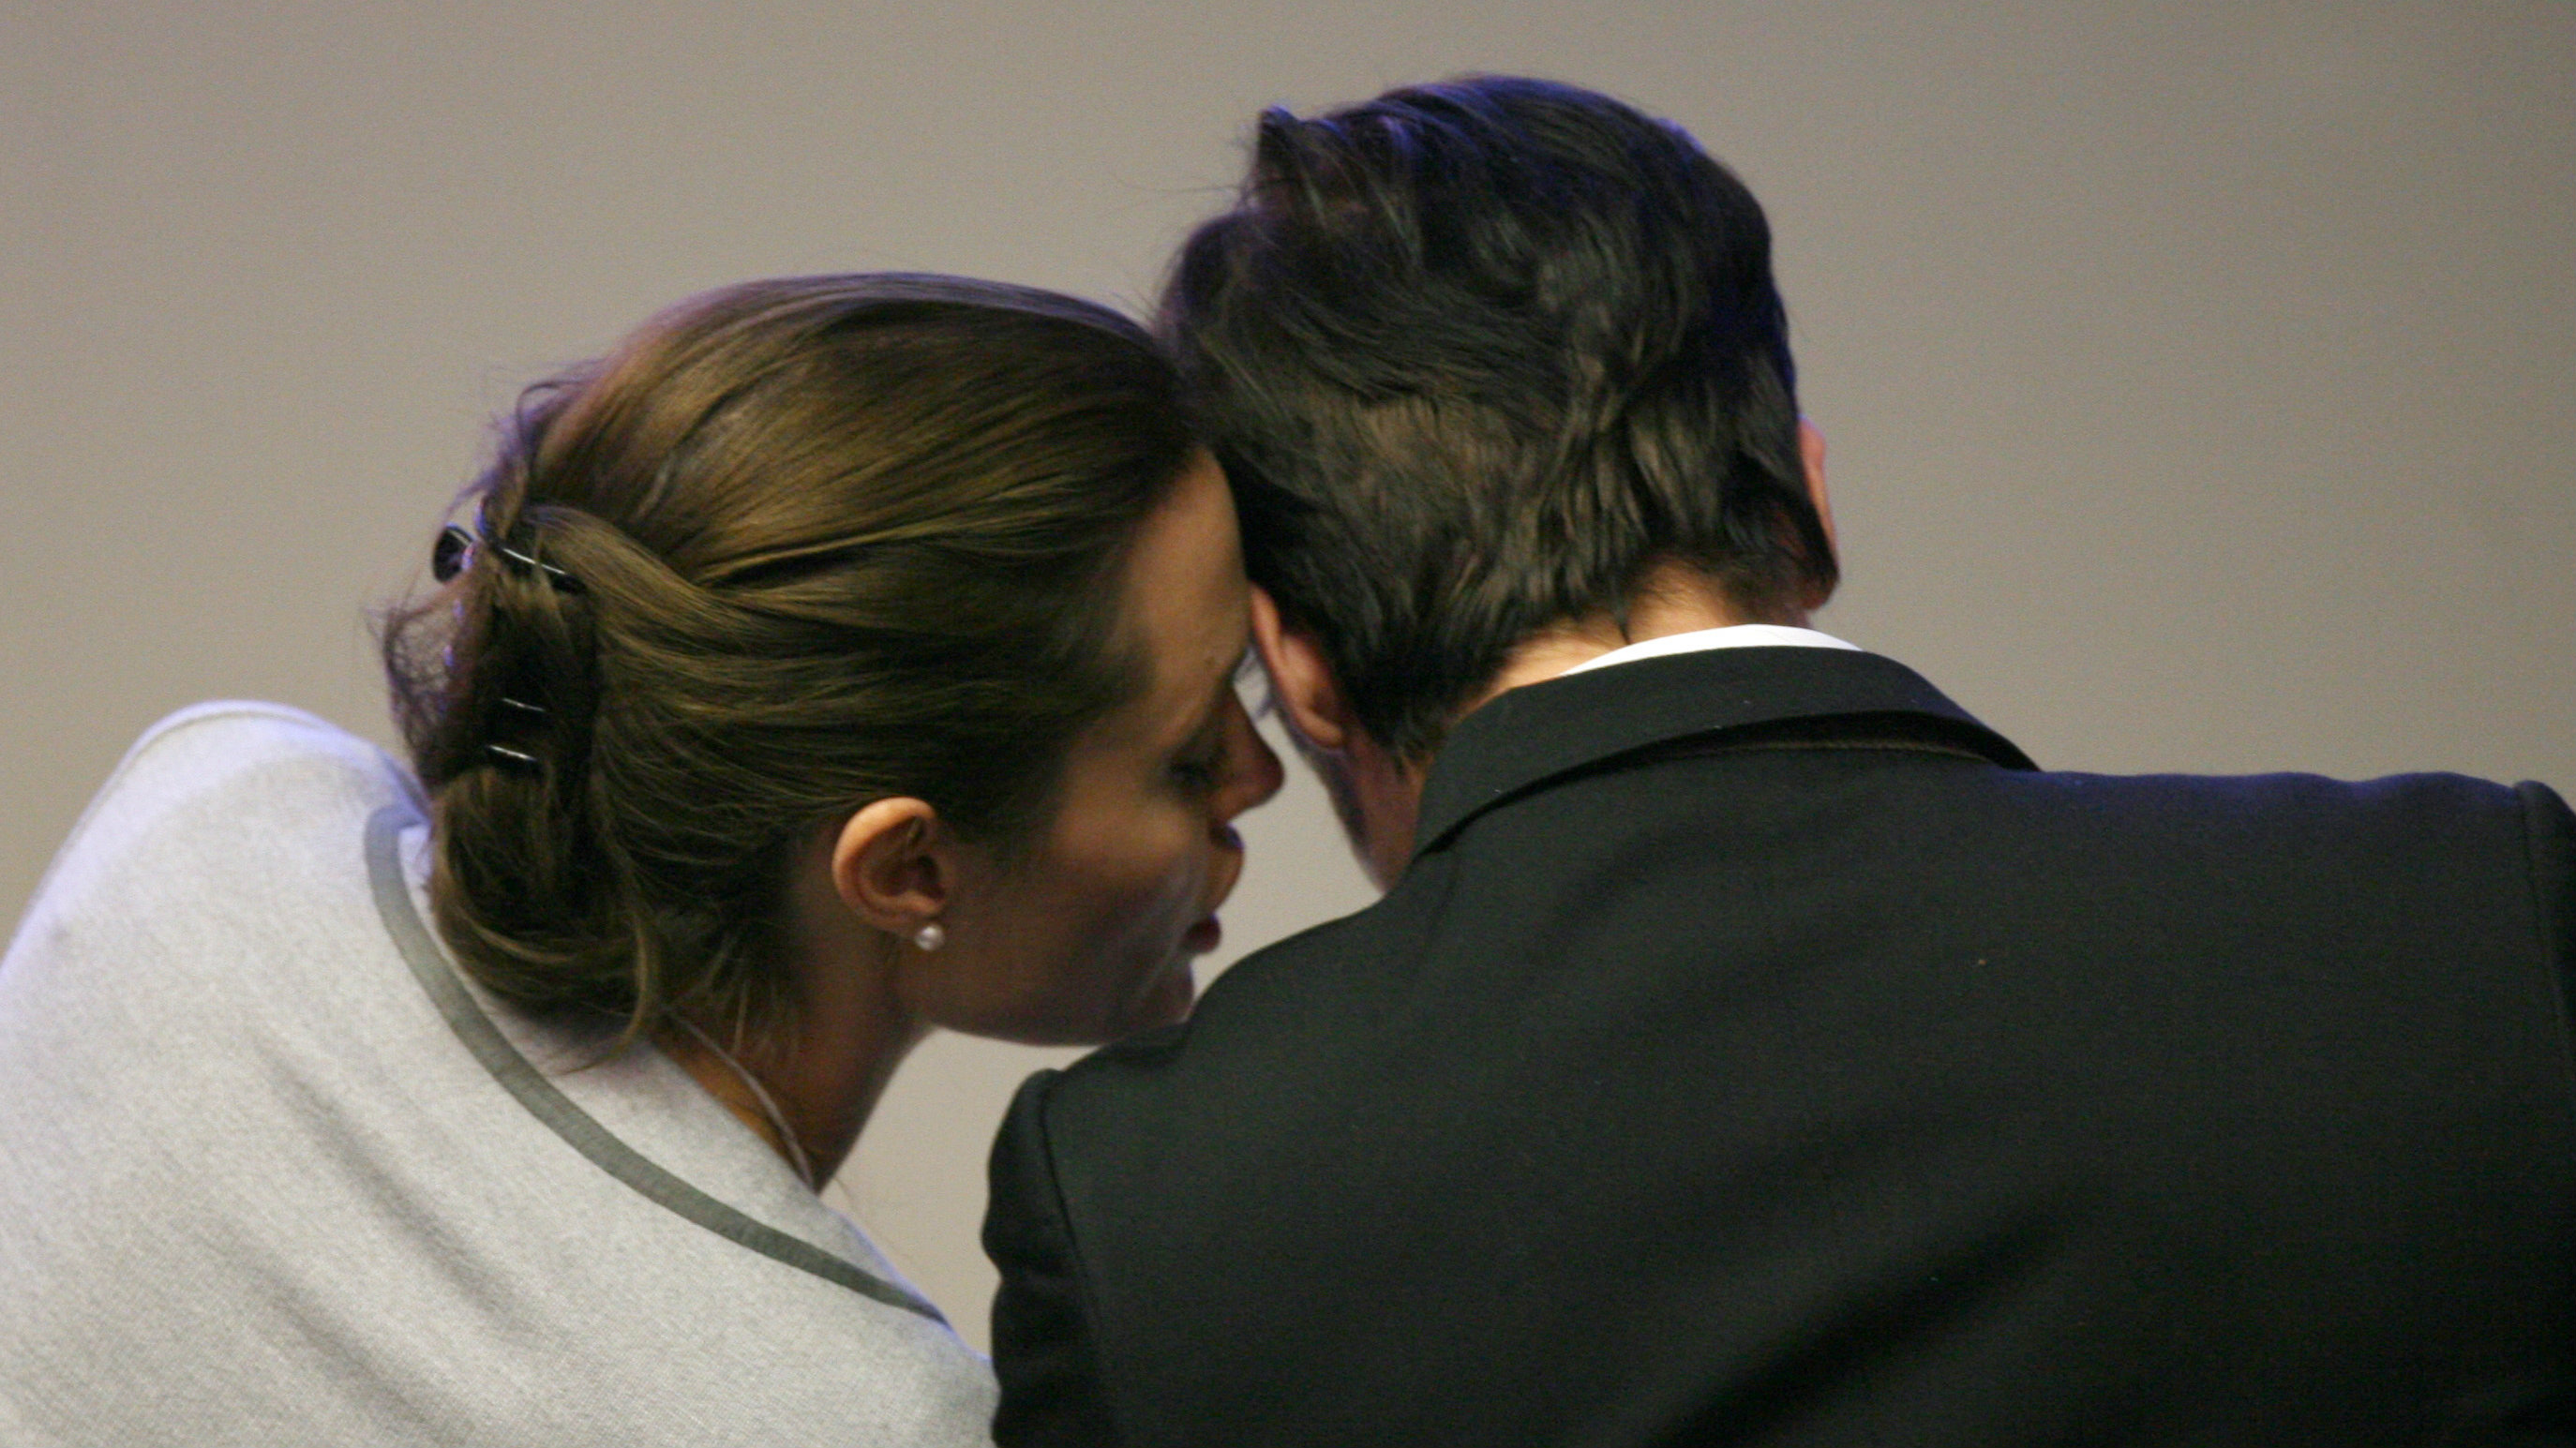 United Nations High Commissioner for Refugees (UNHCR) Goodwill Ambassador U.S. actress Angelina Jolie (L) whispers to U.S. actor Brad Pitt (R) during the 'A New Mindset for the UN' session at the World Economic Forum (WEF) in Davos, Switzerland, January 26, 2006. REUTERS/Pascal Lauener